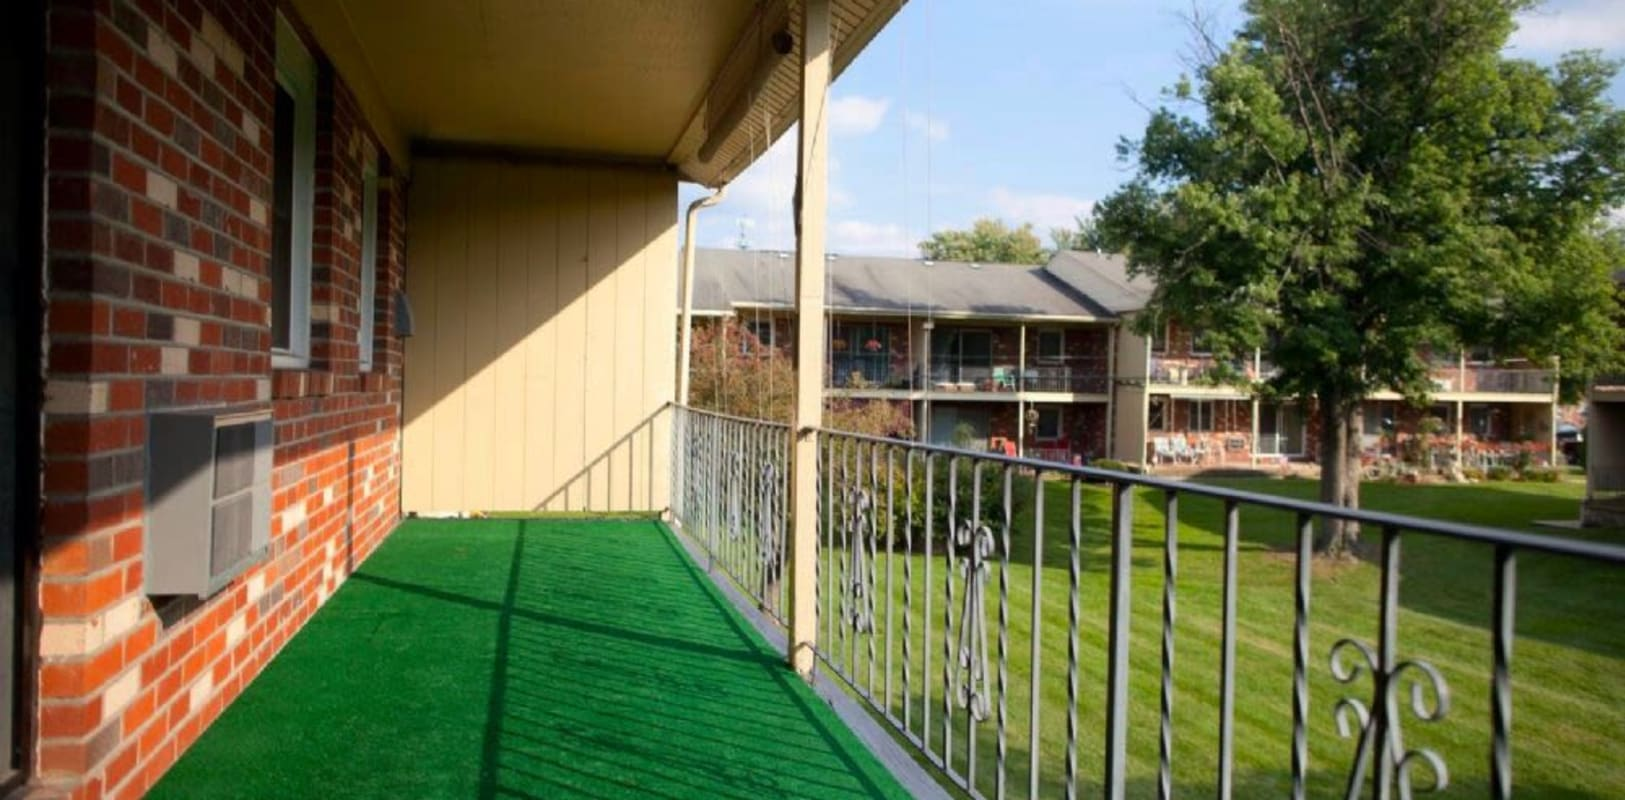 Balcony with nice green turf at Spring Valley Apartments in Sinking Spring, Pennsylvania